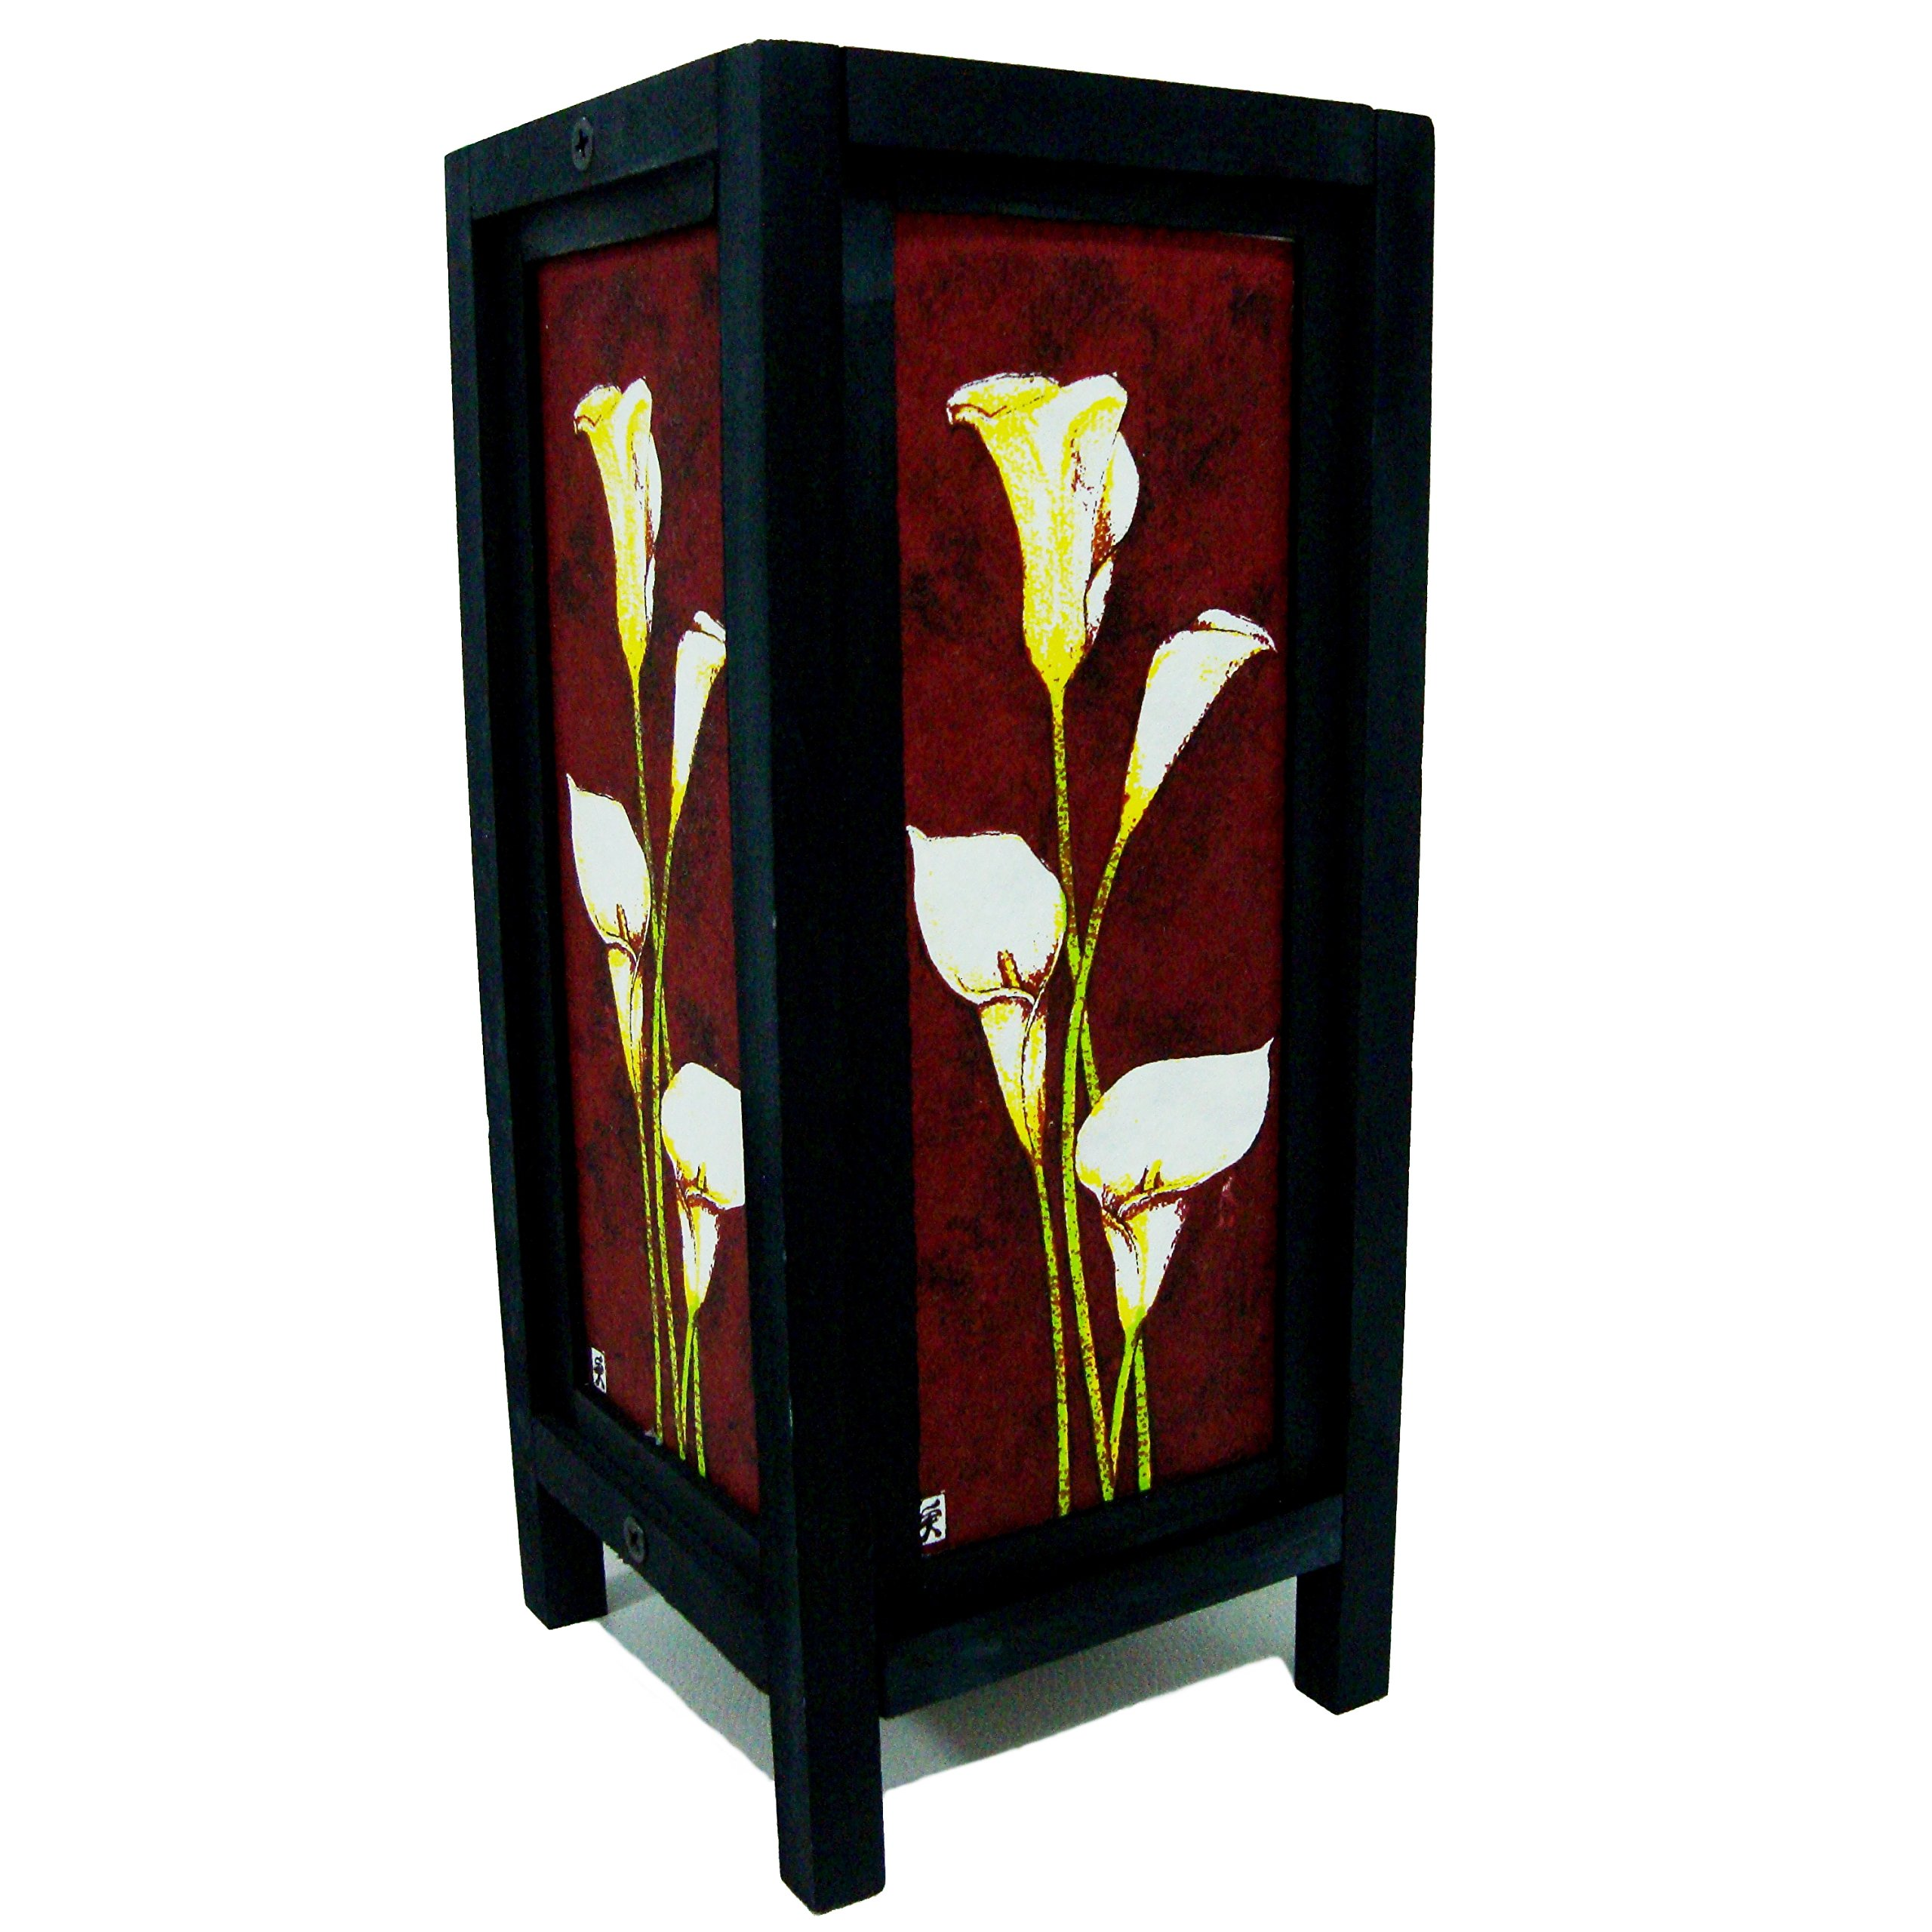 White Lily Flower Handmade Asian Oriental Wood Light Night Lamp Shade Table Desk Art Gift Home Vintage Bedroom Bedside Garden Living Room; Free Adapter; a Us 2 Pin Plug #512 by Apple-Heart (Image #5)